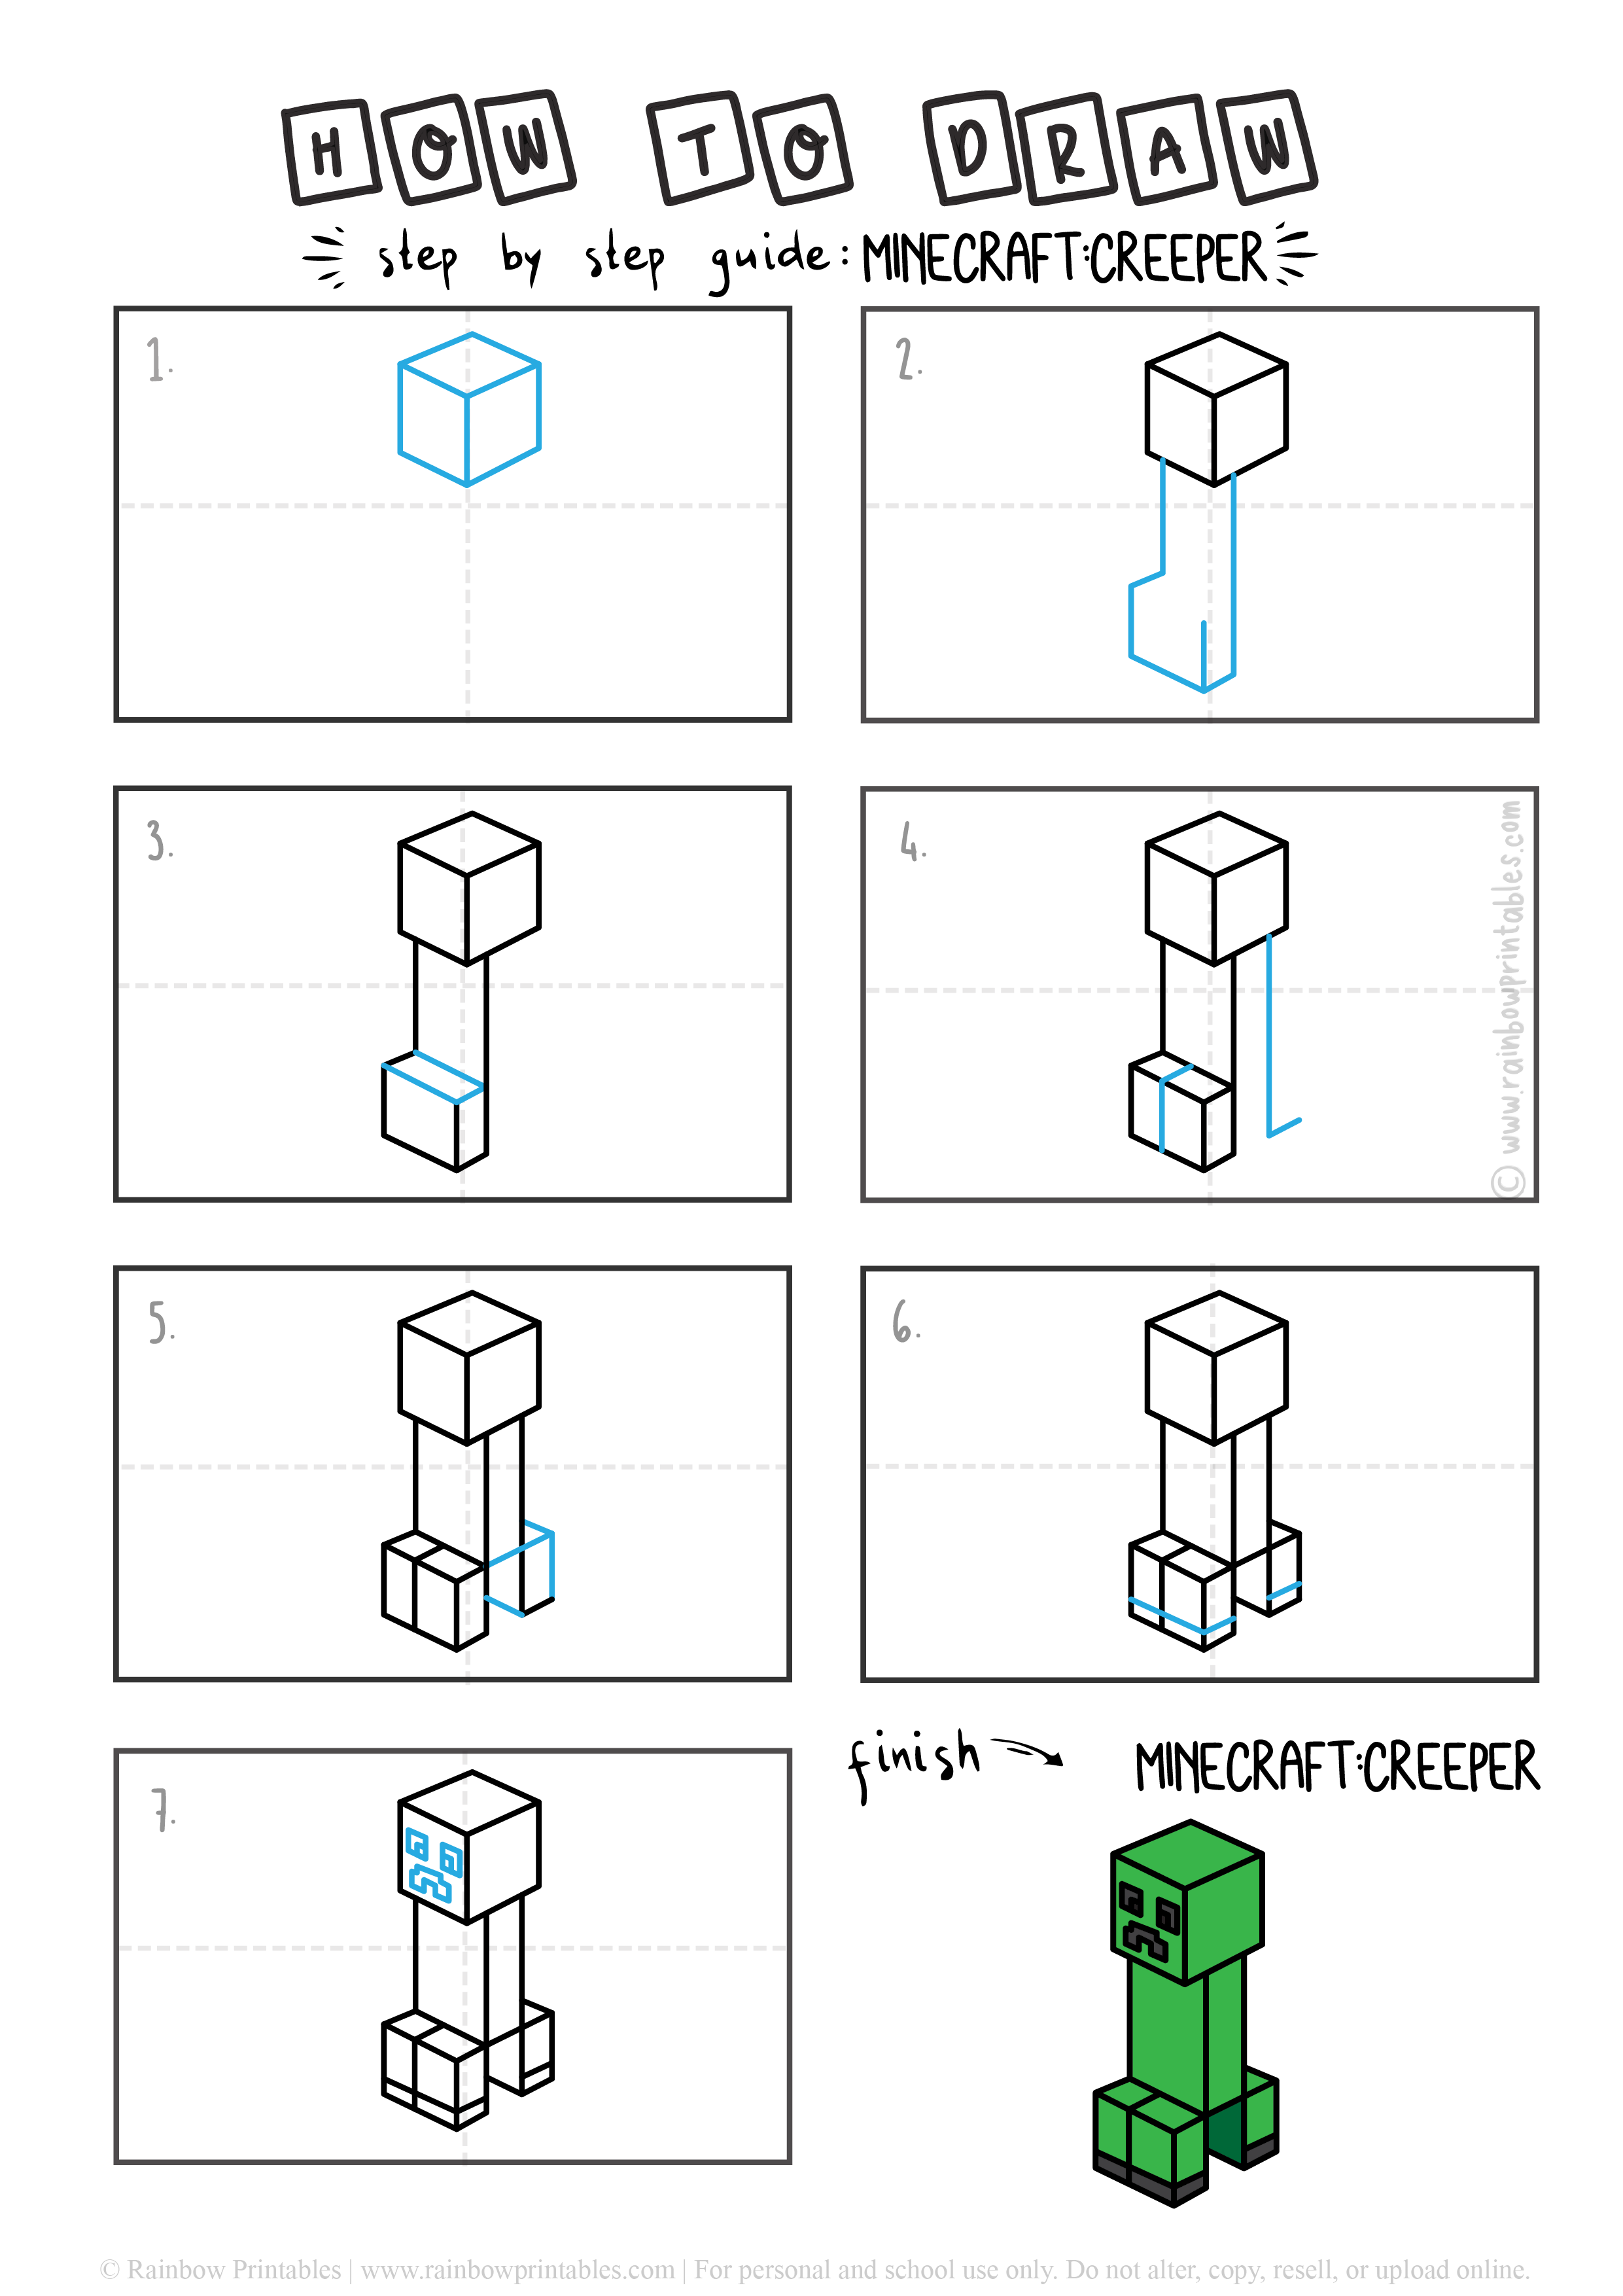 How To Draw Minecraft Creeper Step by Step Art for Kids Tutorial Guide